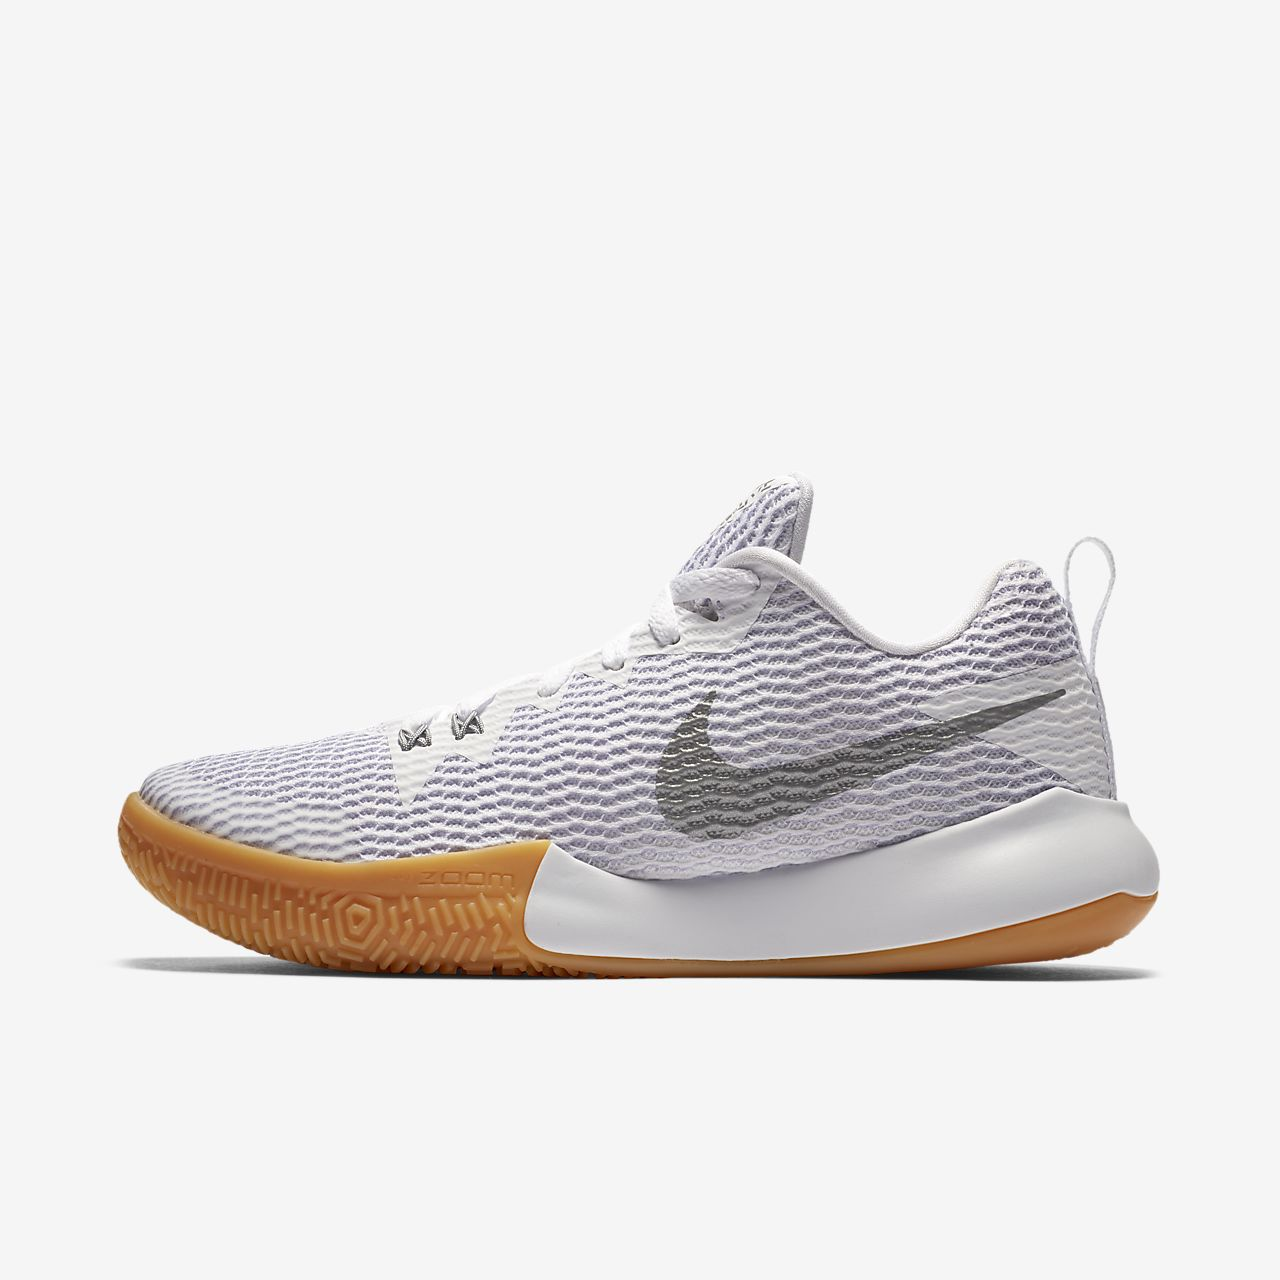 Nike Zoom Live II Women s Basketball Shoe. Nike.com GB 88cae99948